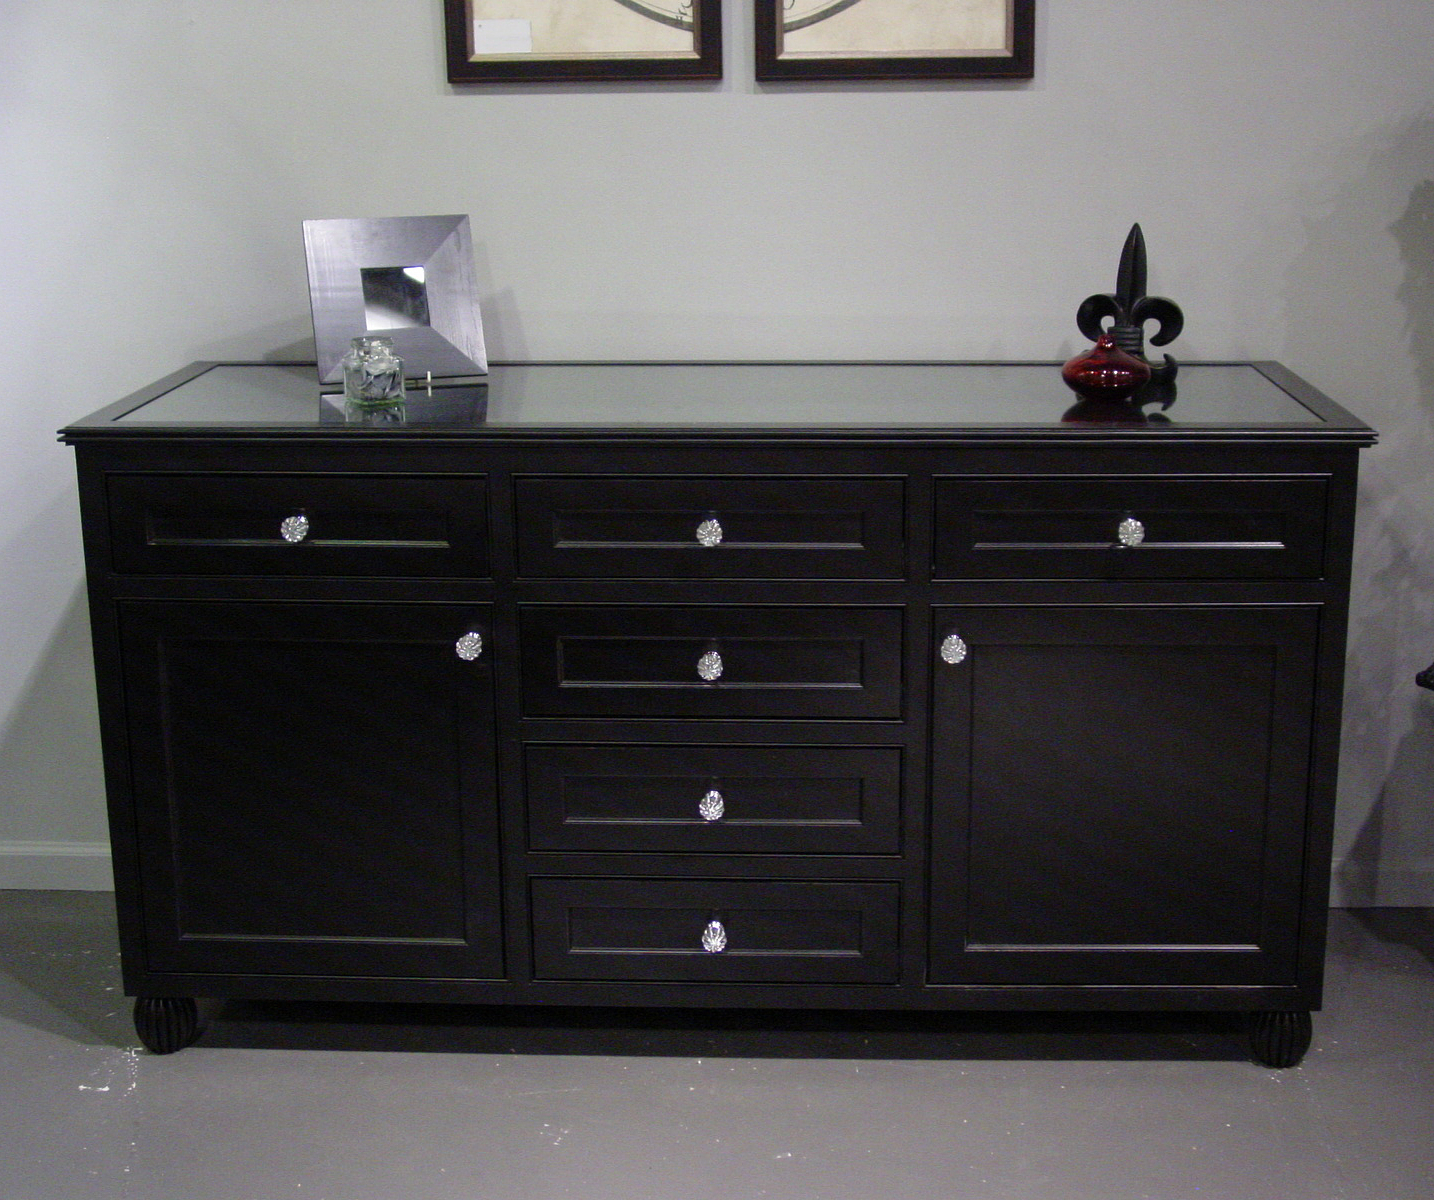 Satin Black & Painted White Sideboards For Well Known Black Painted Dresser With Glass Top (Gallery 6 of 20)